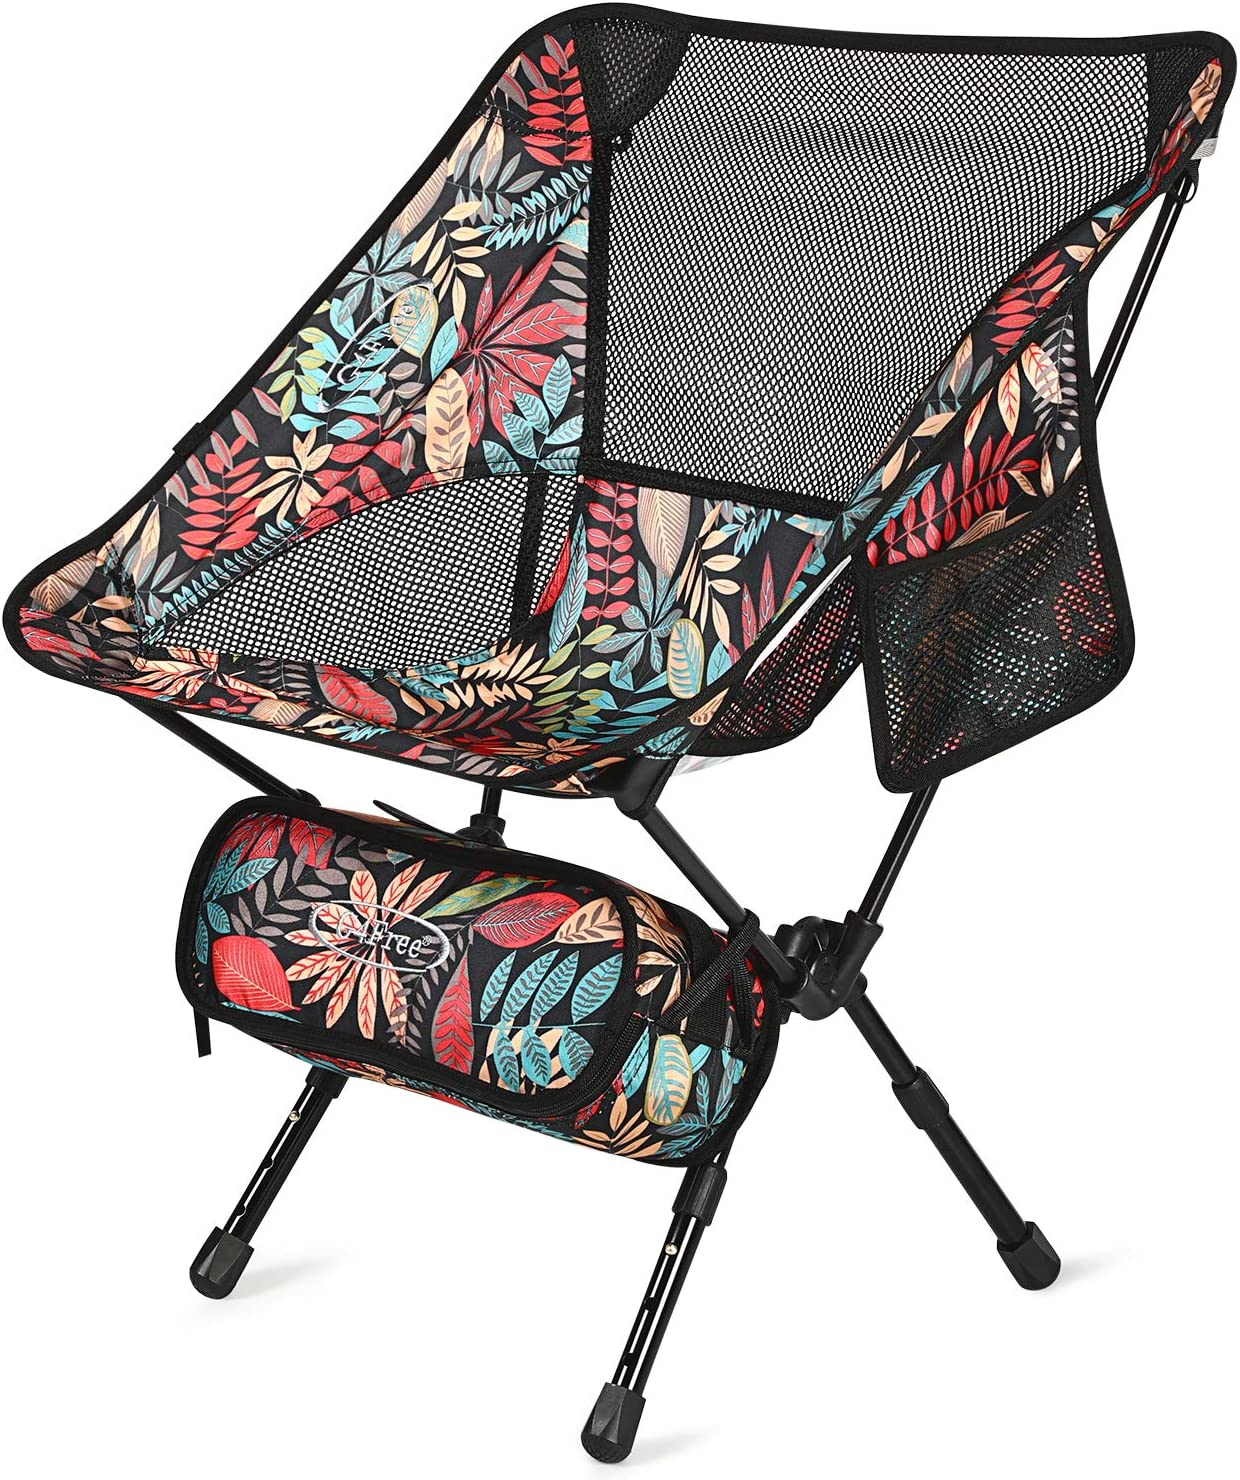 Picnic Camp Beach Festival Travel Backpacking Hiking G4Free Upgraded 2 Pack Ultralight Folding Camping Chair Portable Compact Heavy Duty for Outdoor